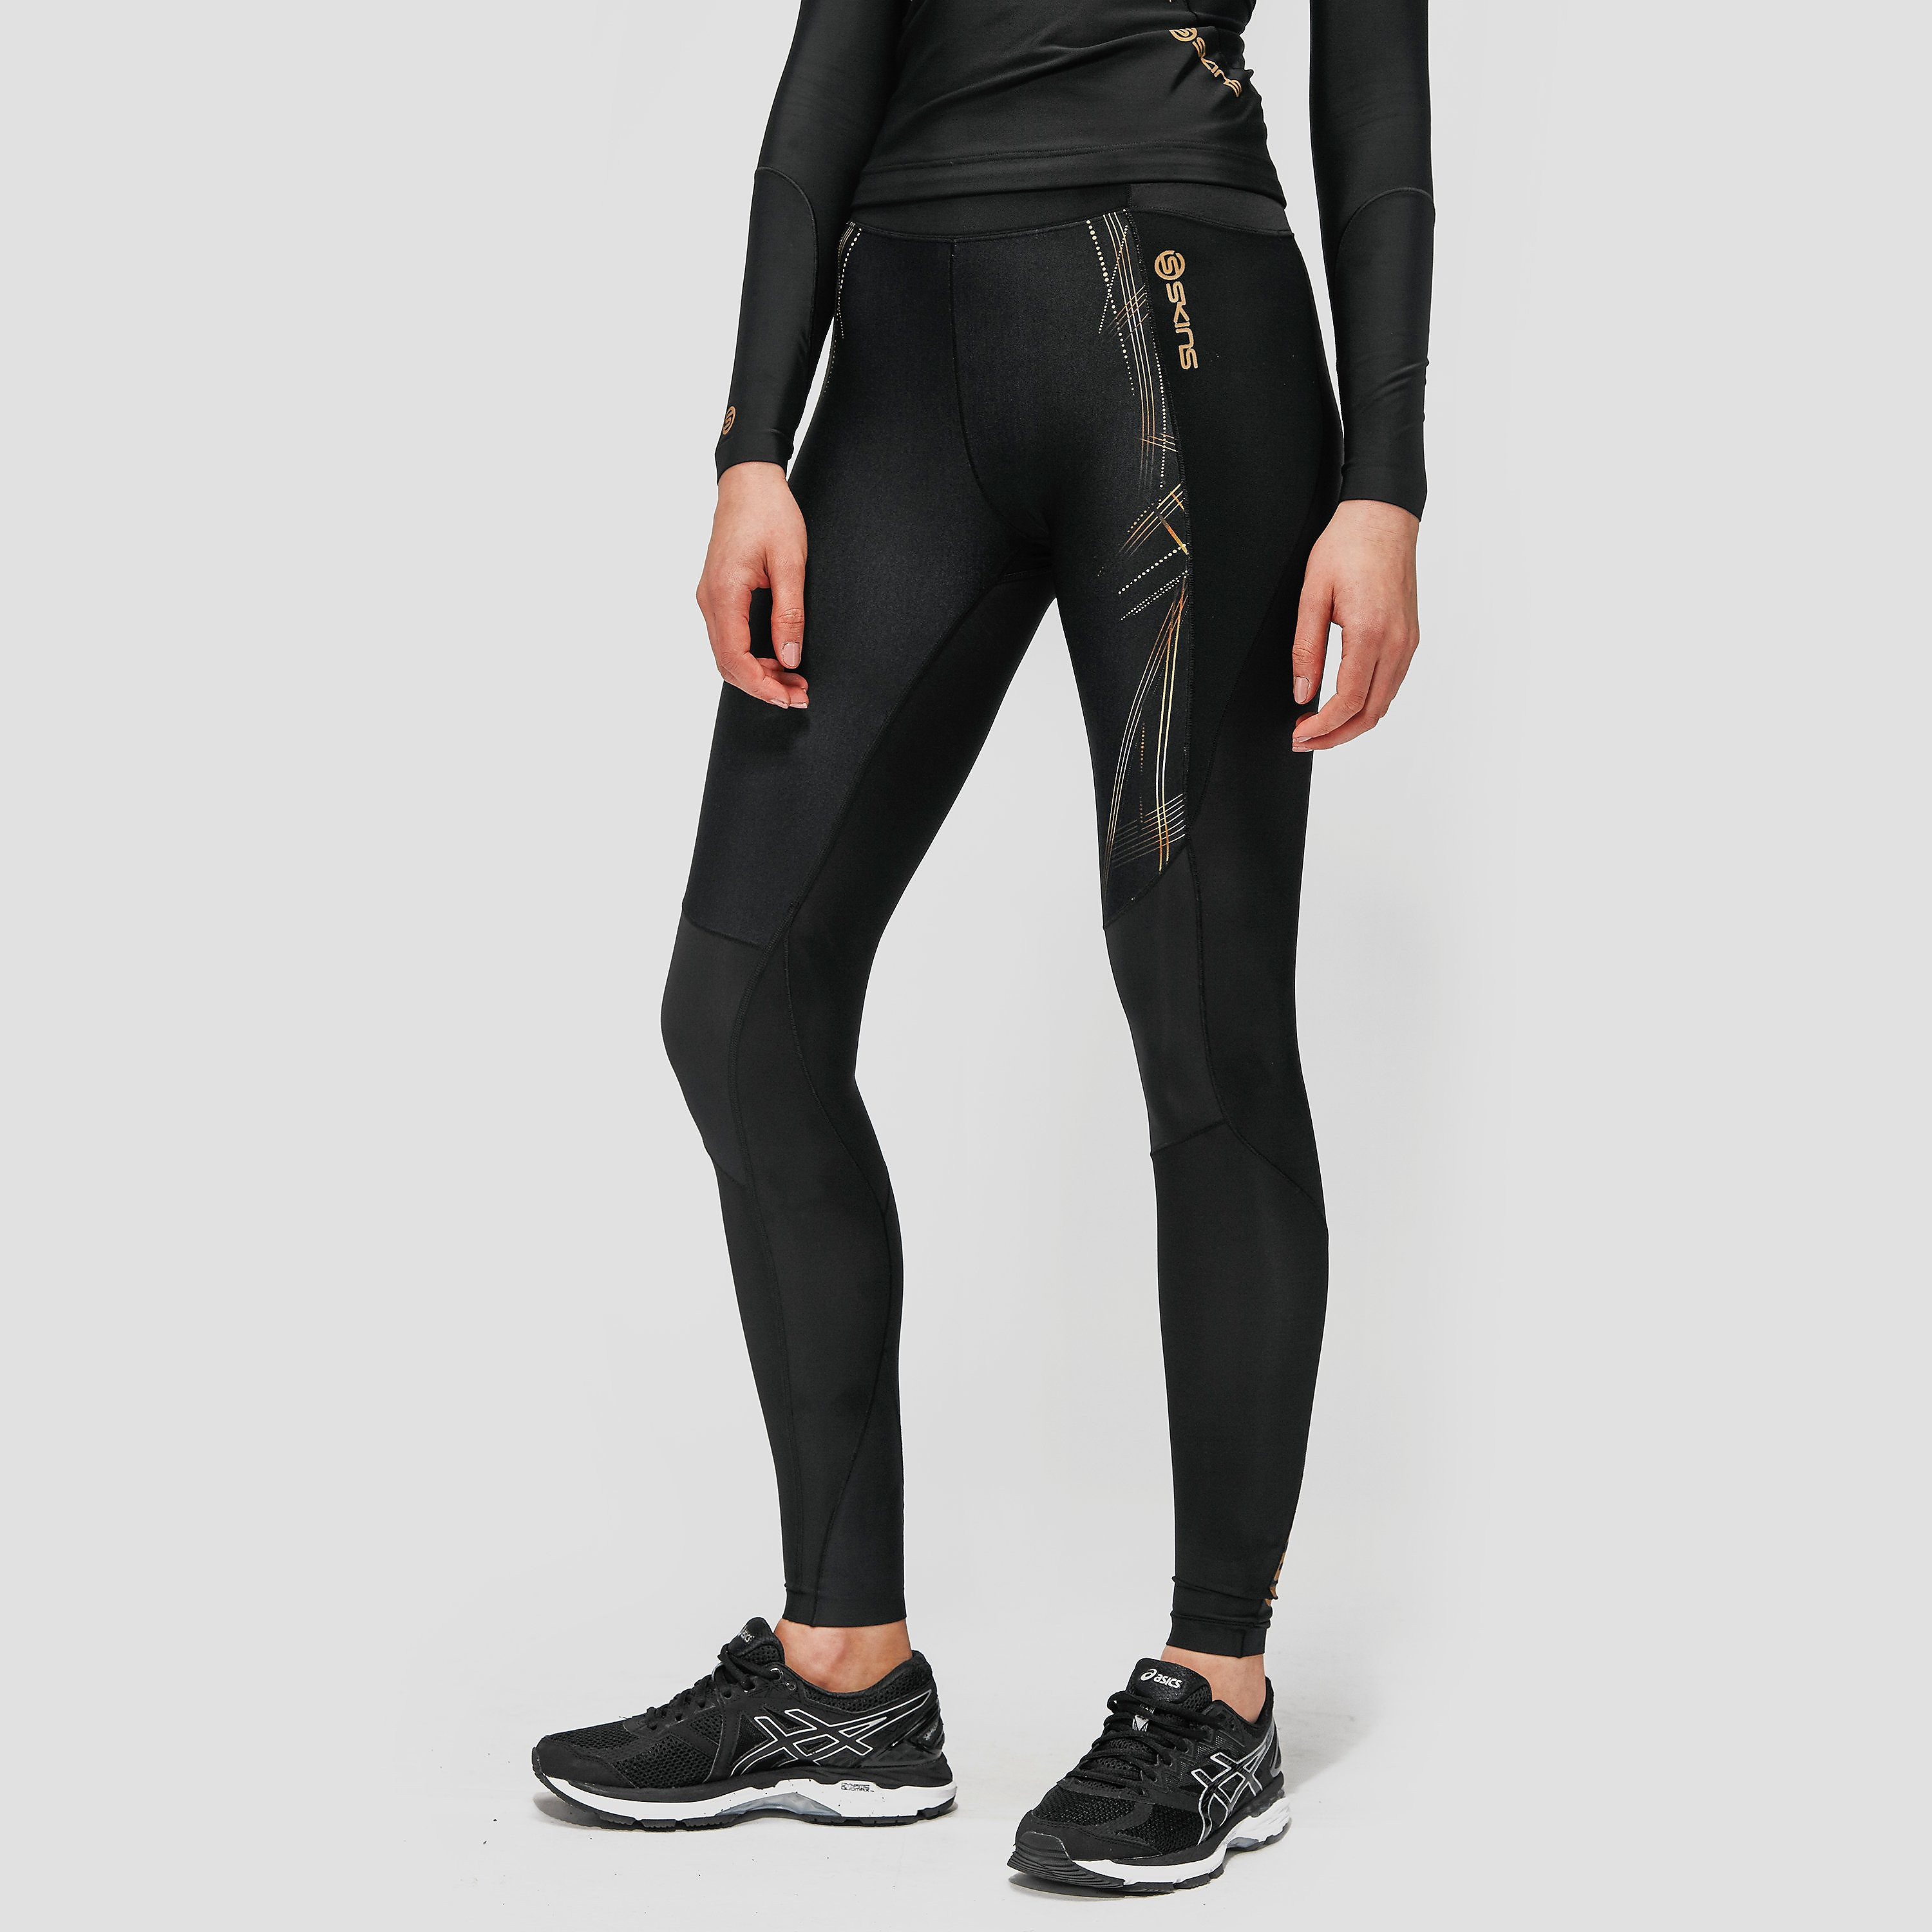 Skins A400 Ladies Compression Long Tights